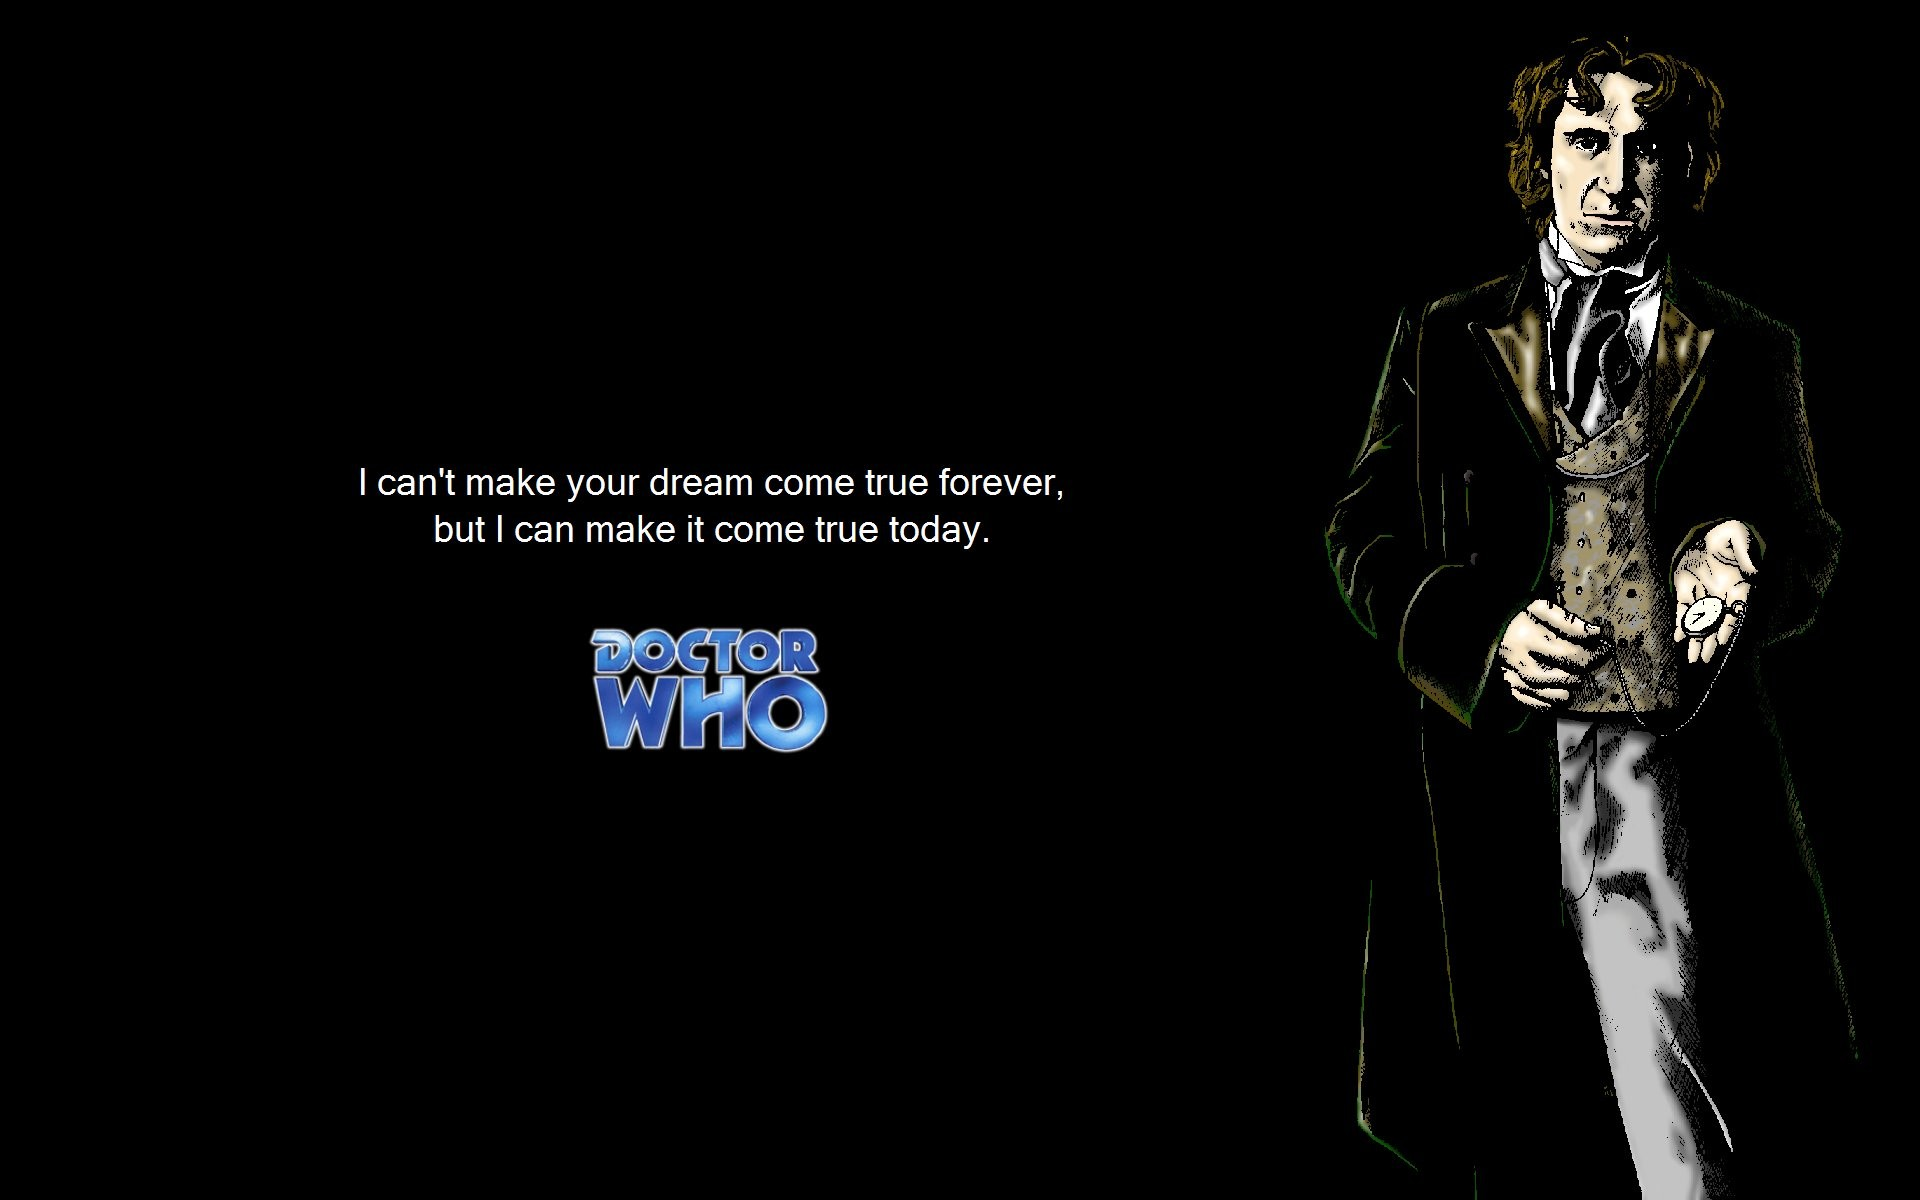 Quotes Paul McGann Doctor Who Eighth Doctor wallpaper | | 300278  | WallpaperUP